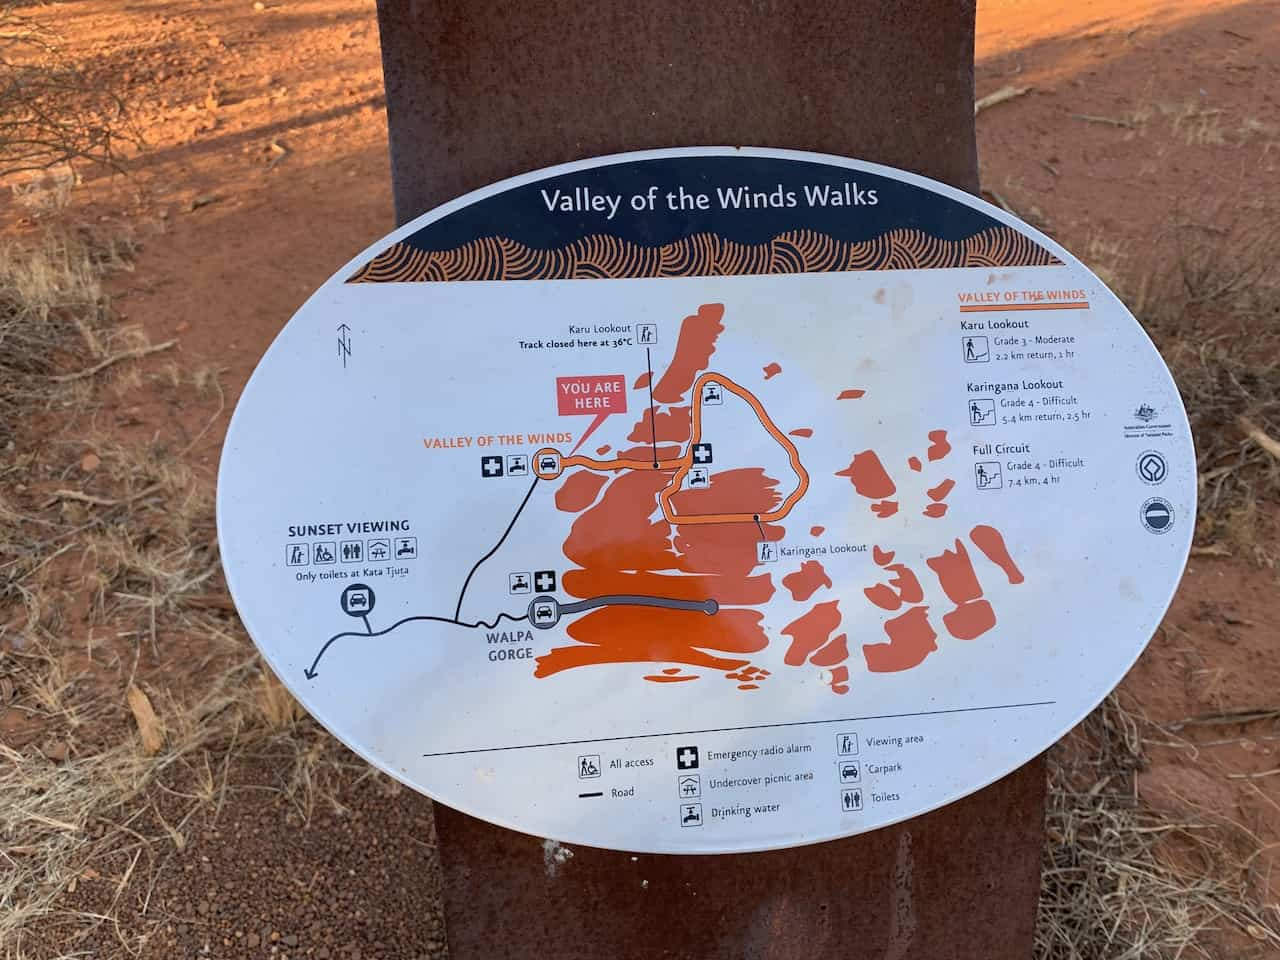 Valley of the Winds Walk Map